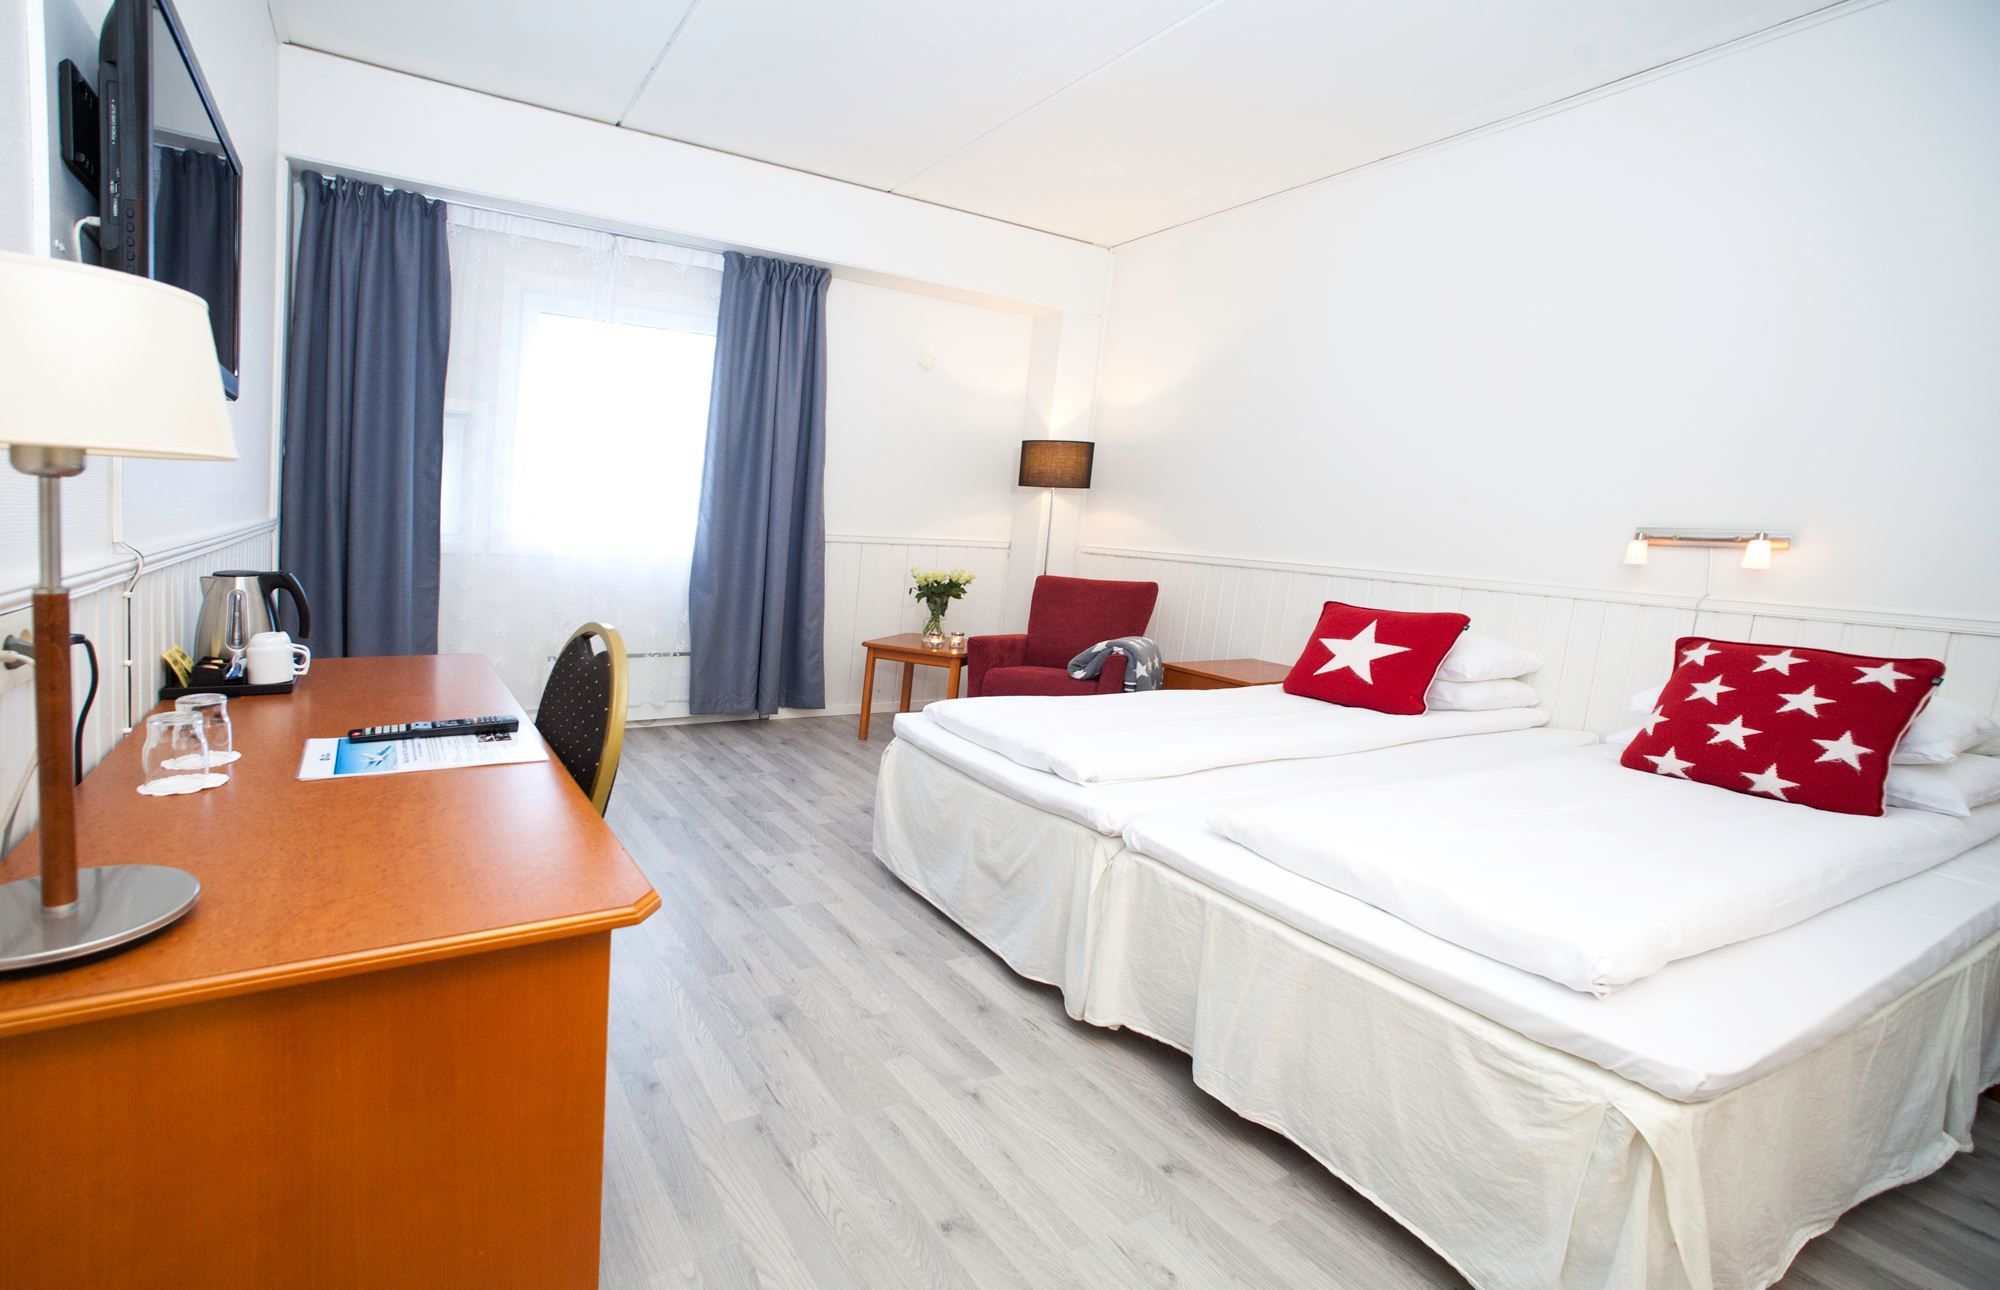 © Best Western Narvik Hotel, Double room at the Best Western Narvik Hotel